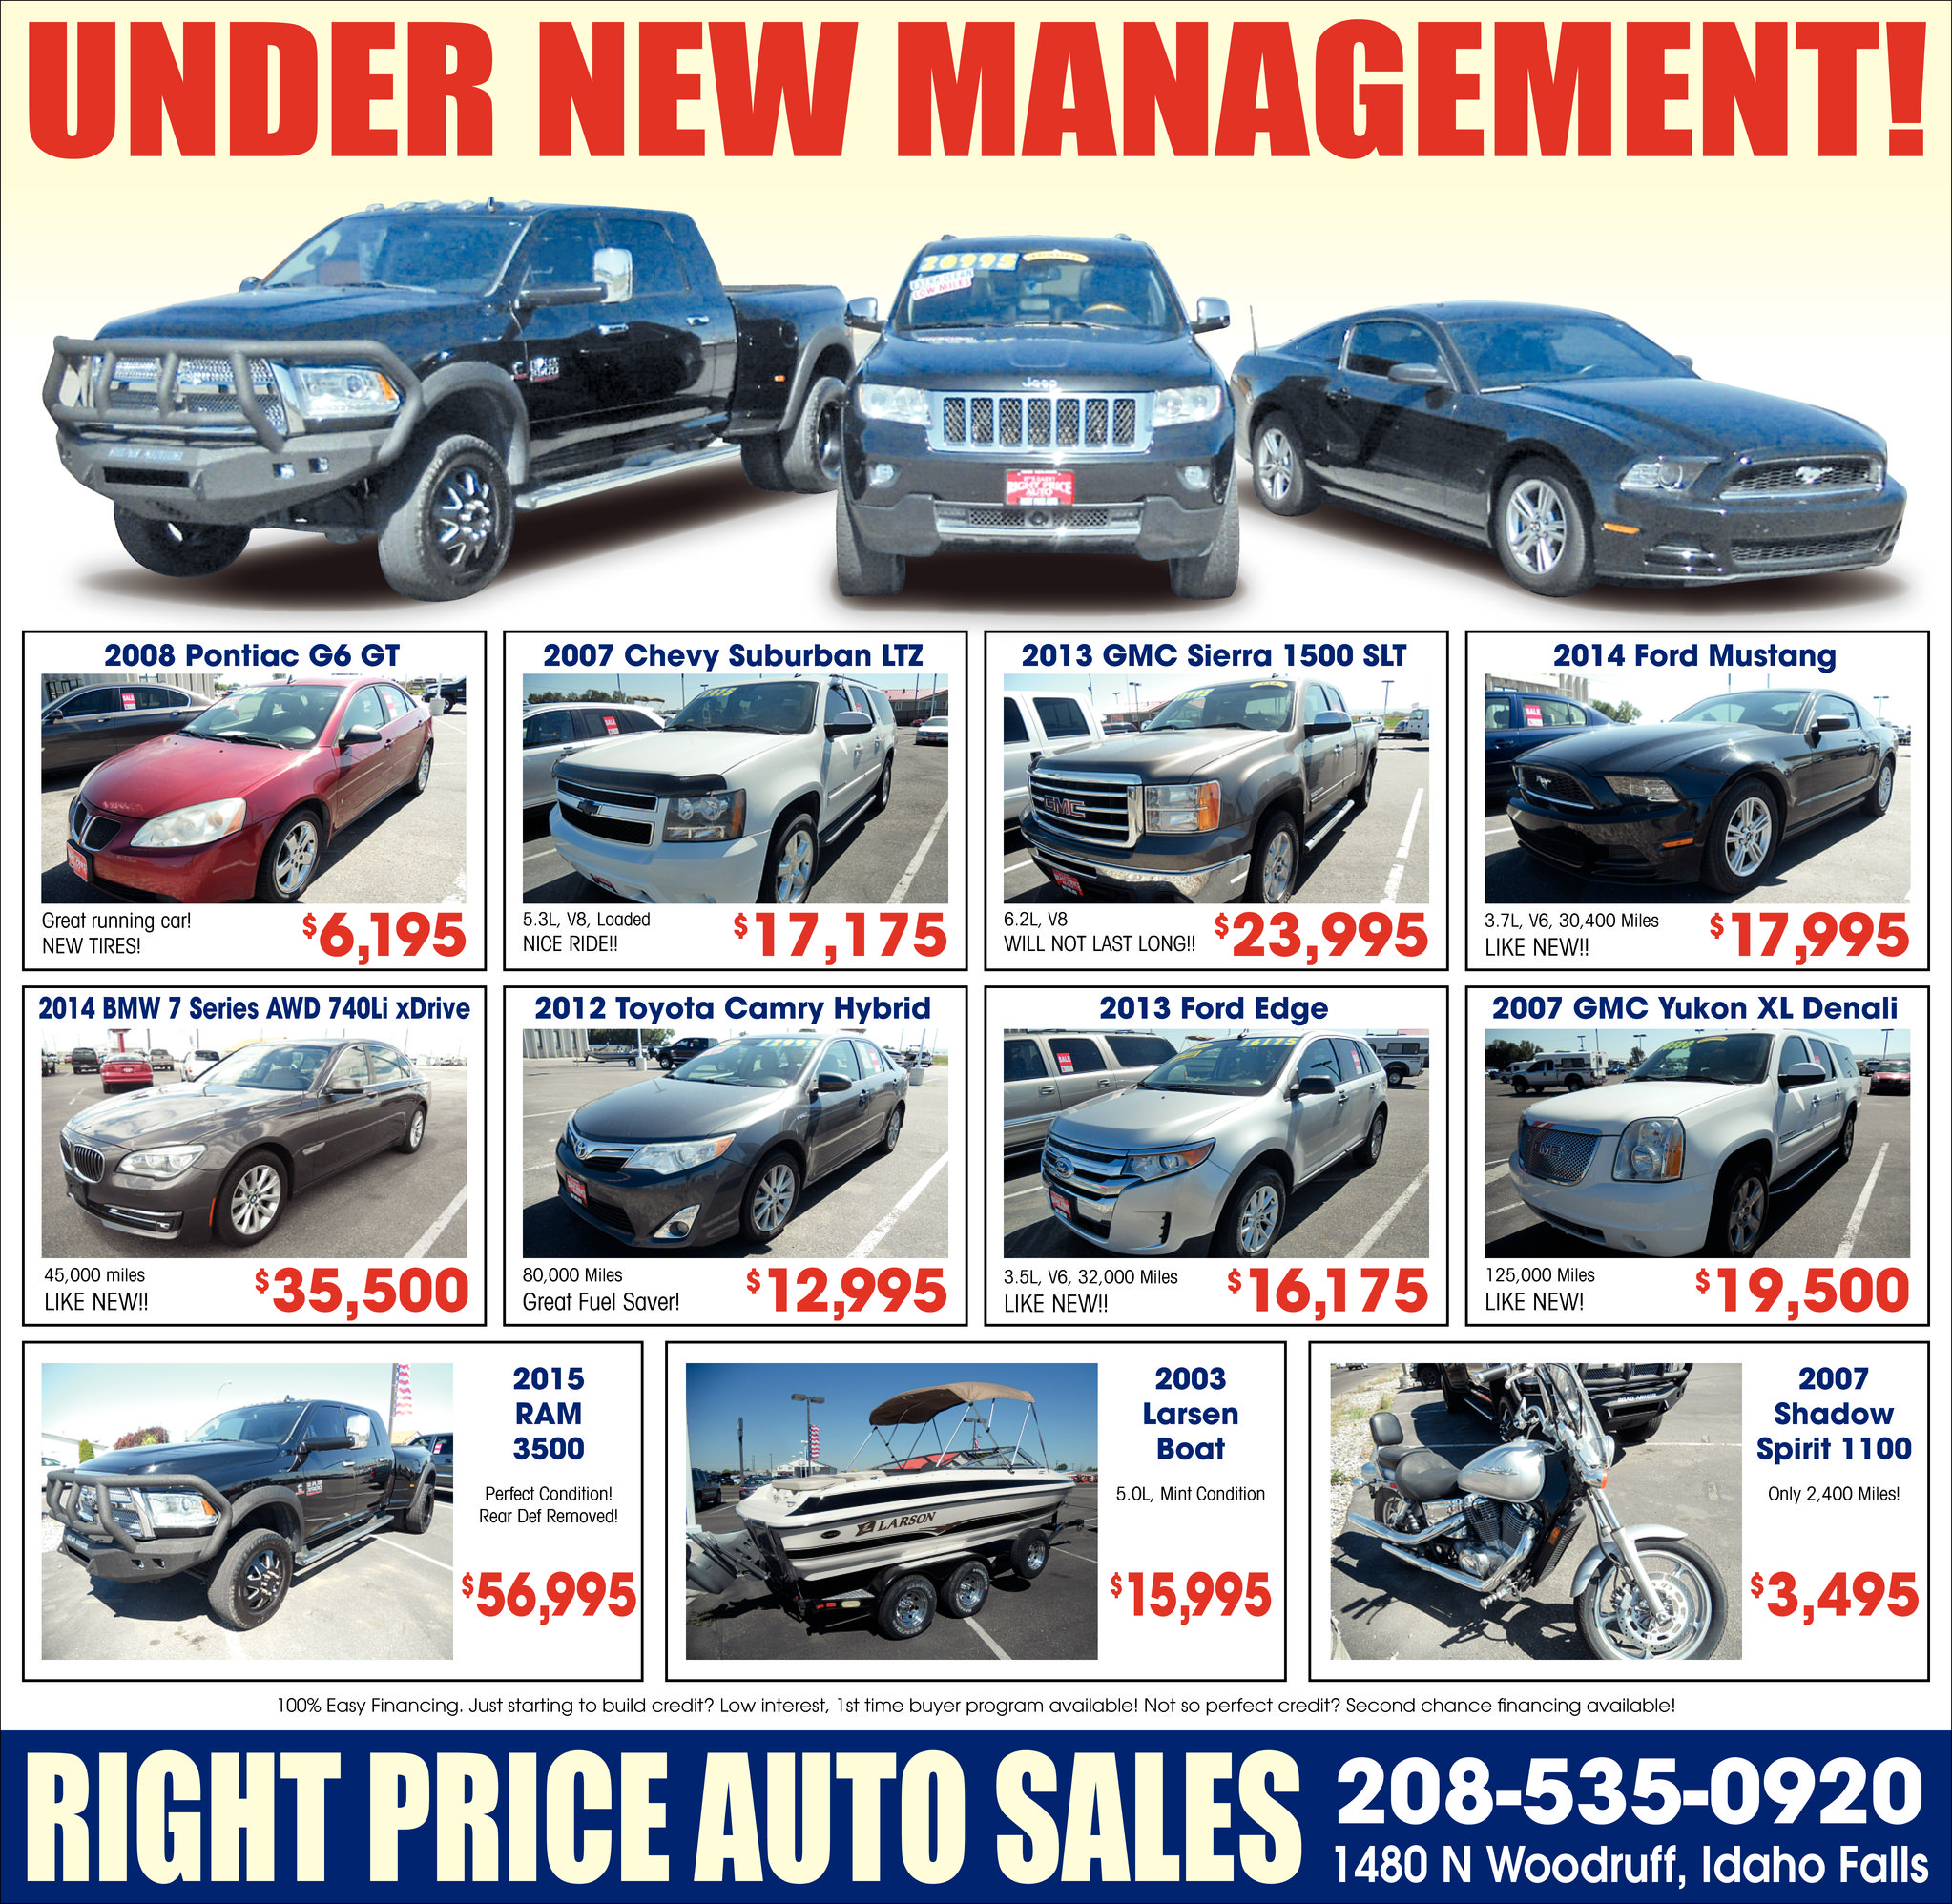 ads for right price auto sales in idaho falls id